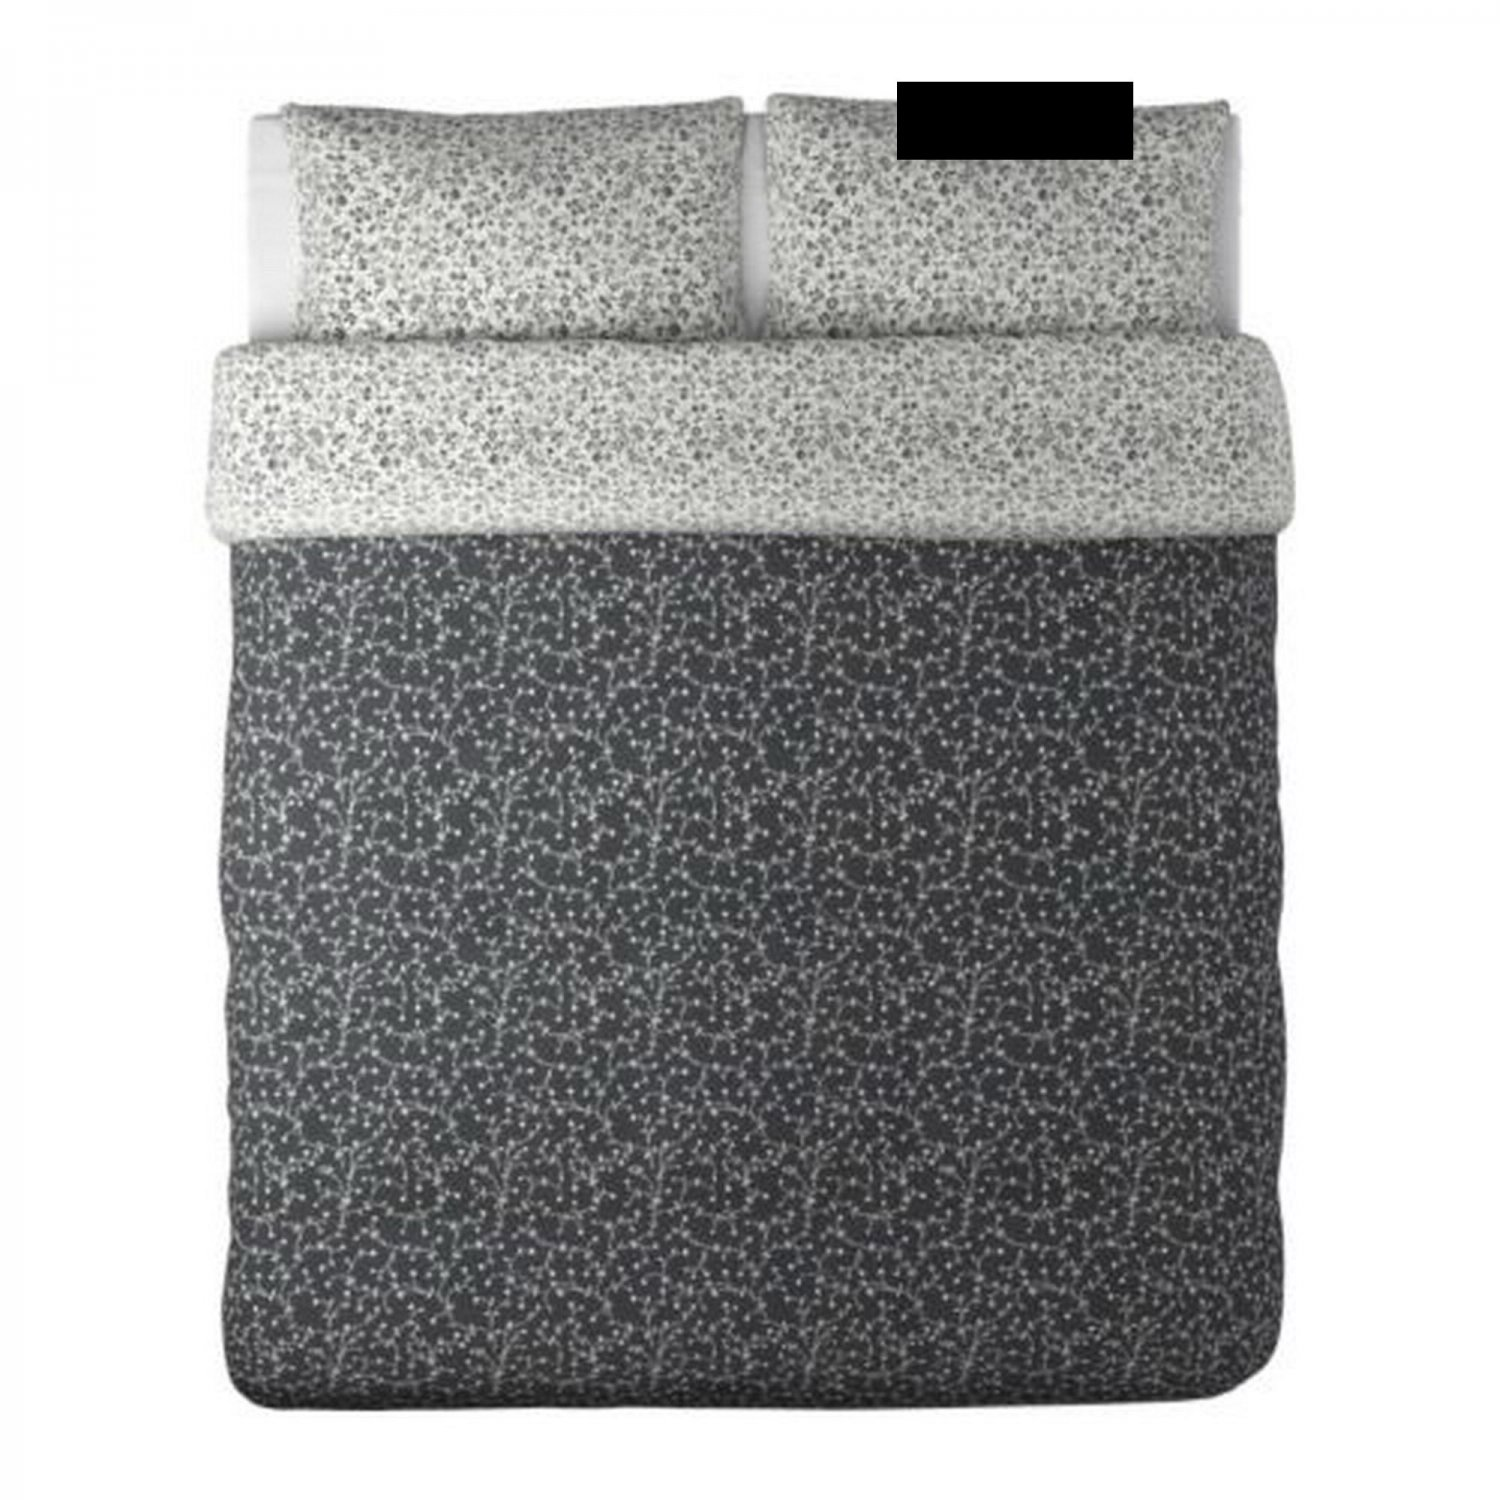 ikea alvine bar duvet cover pillowcases set king black white floral b r. Black Bedroom Furniture Sets. Home Design Ideas